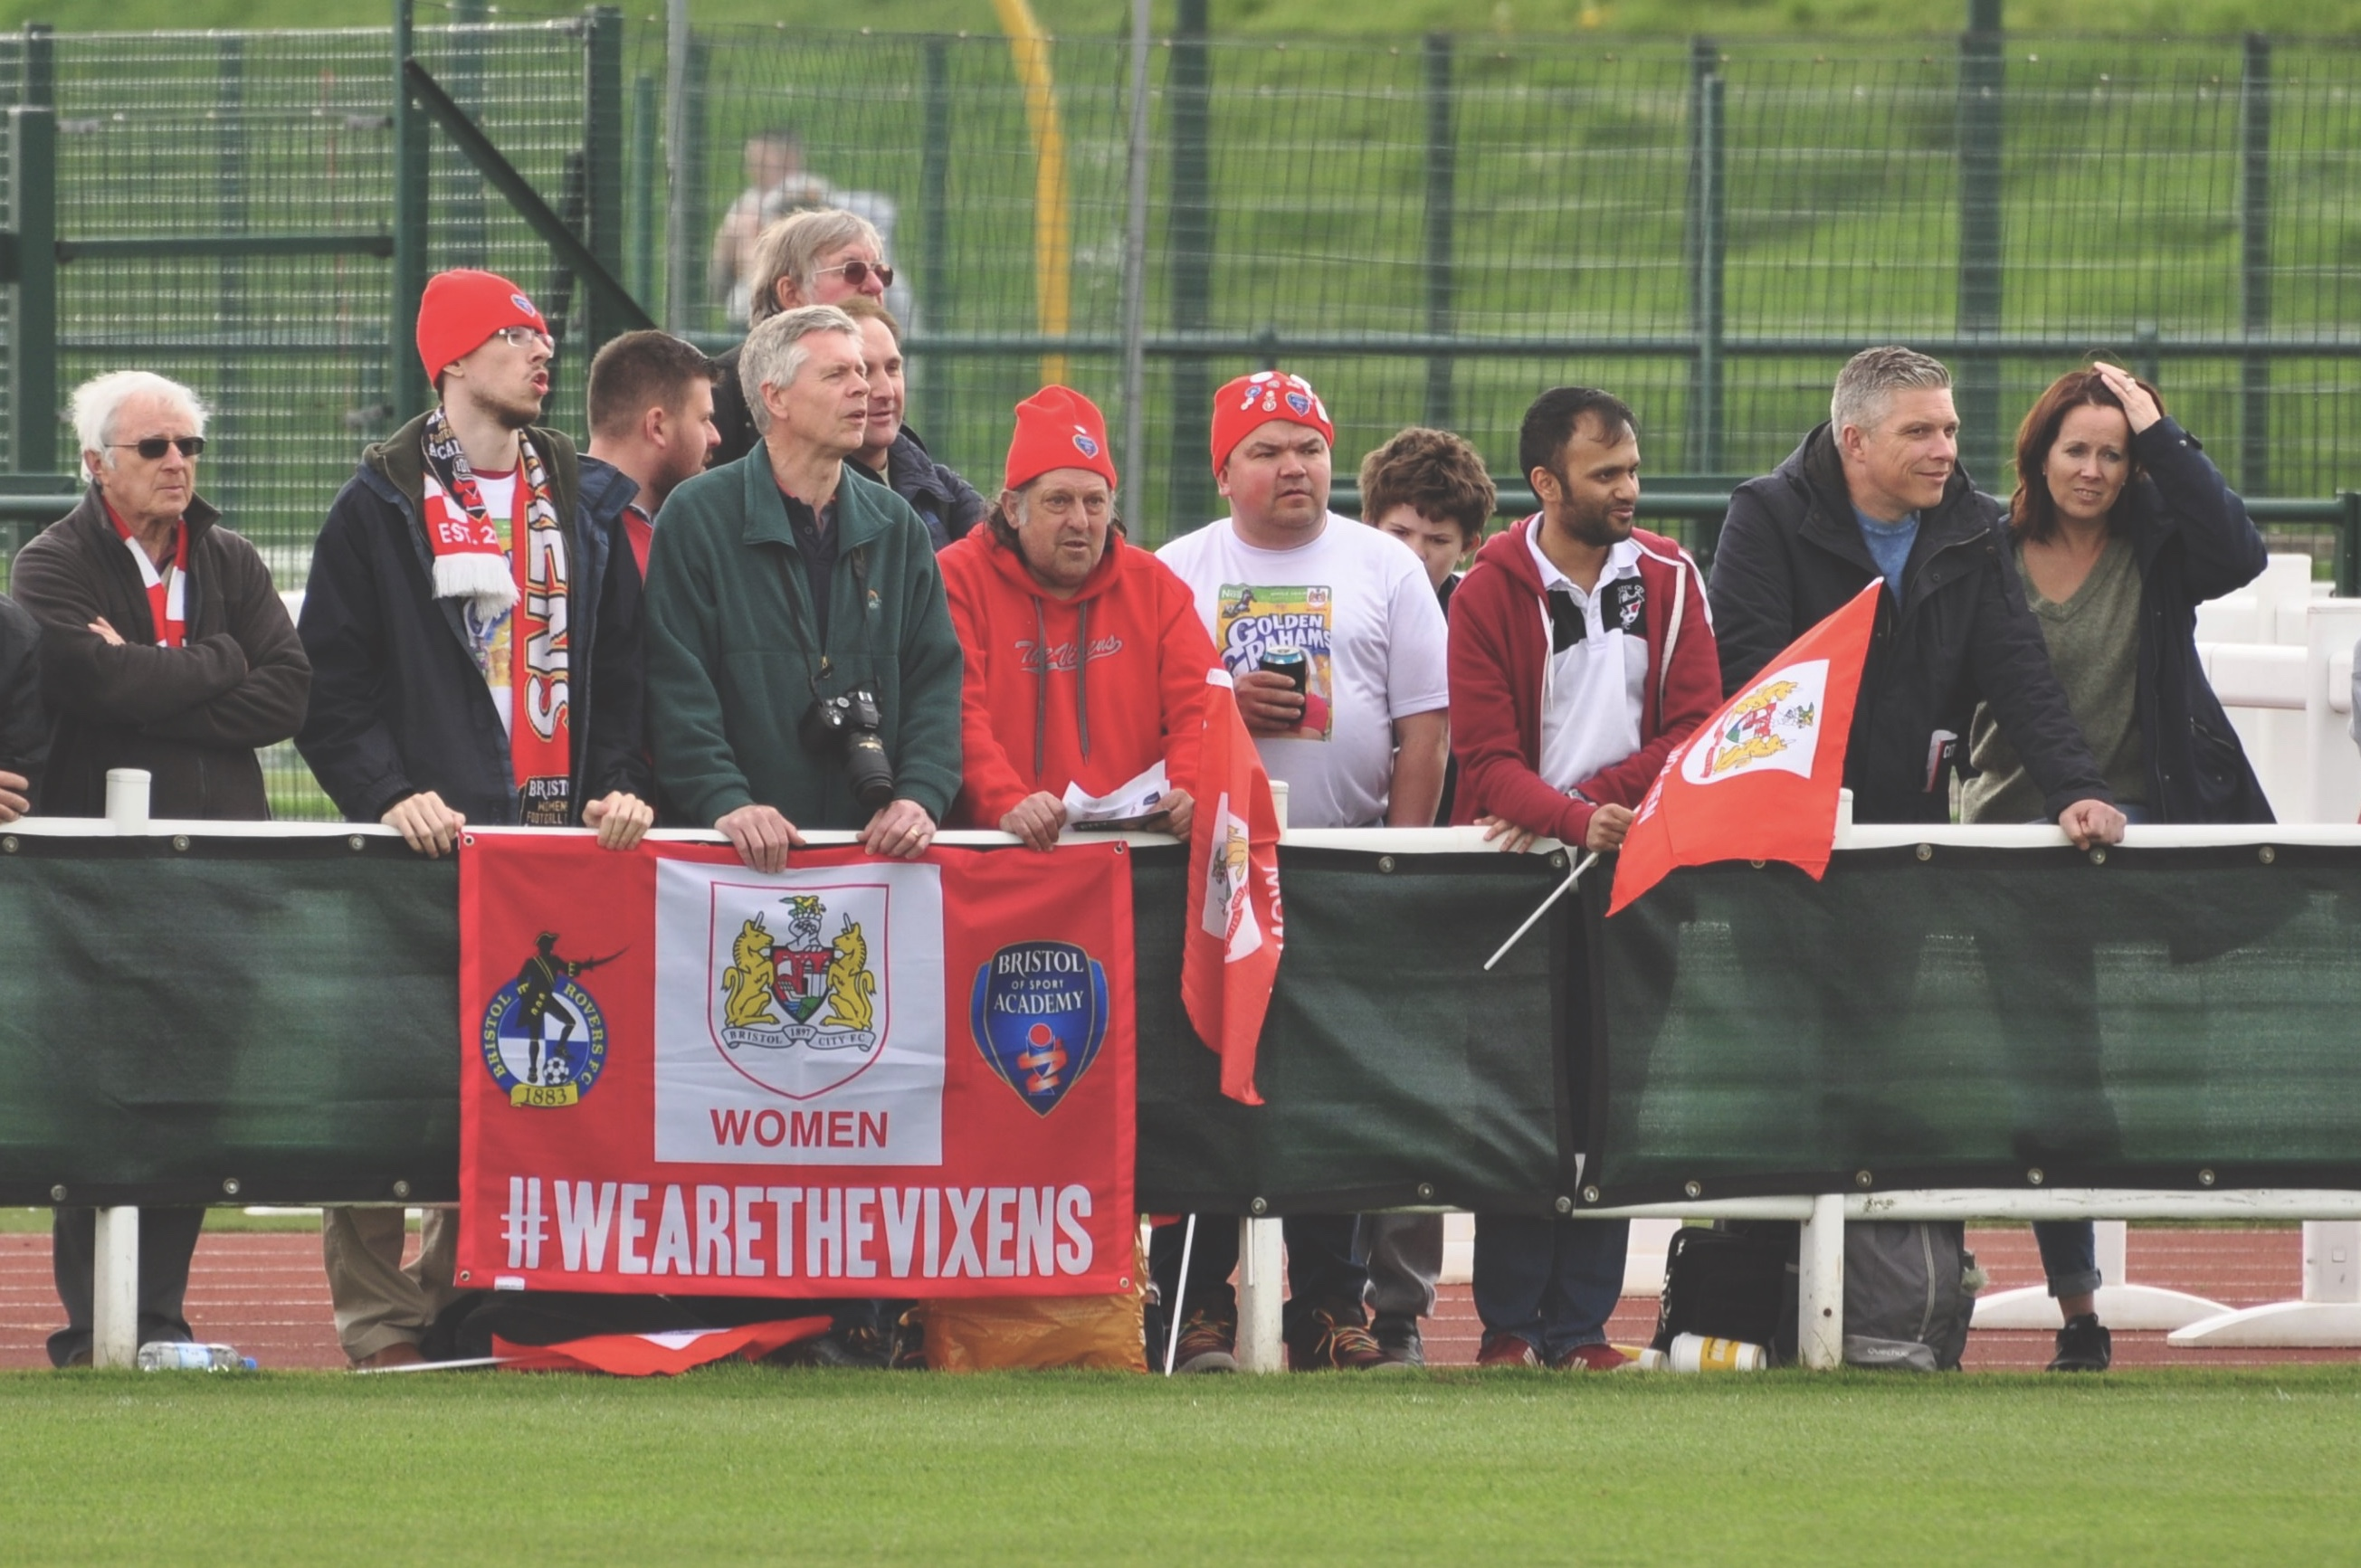 Bristol City's unofficial Supporter's Club